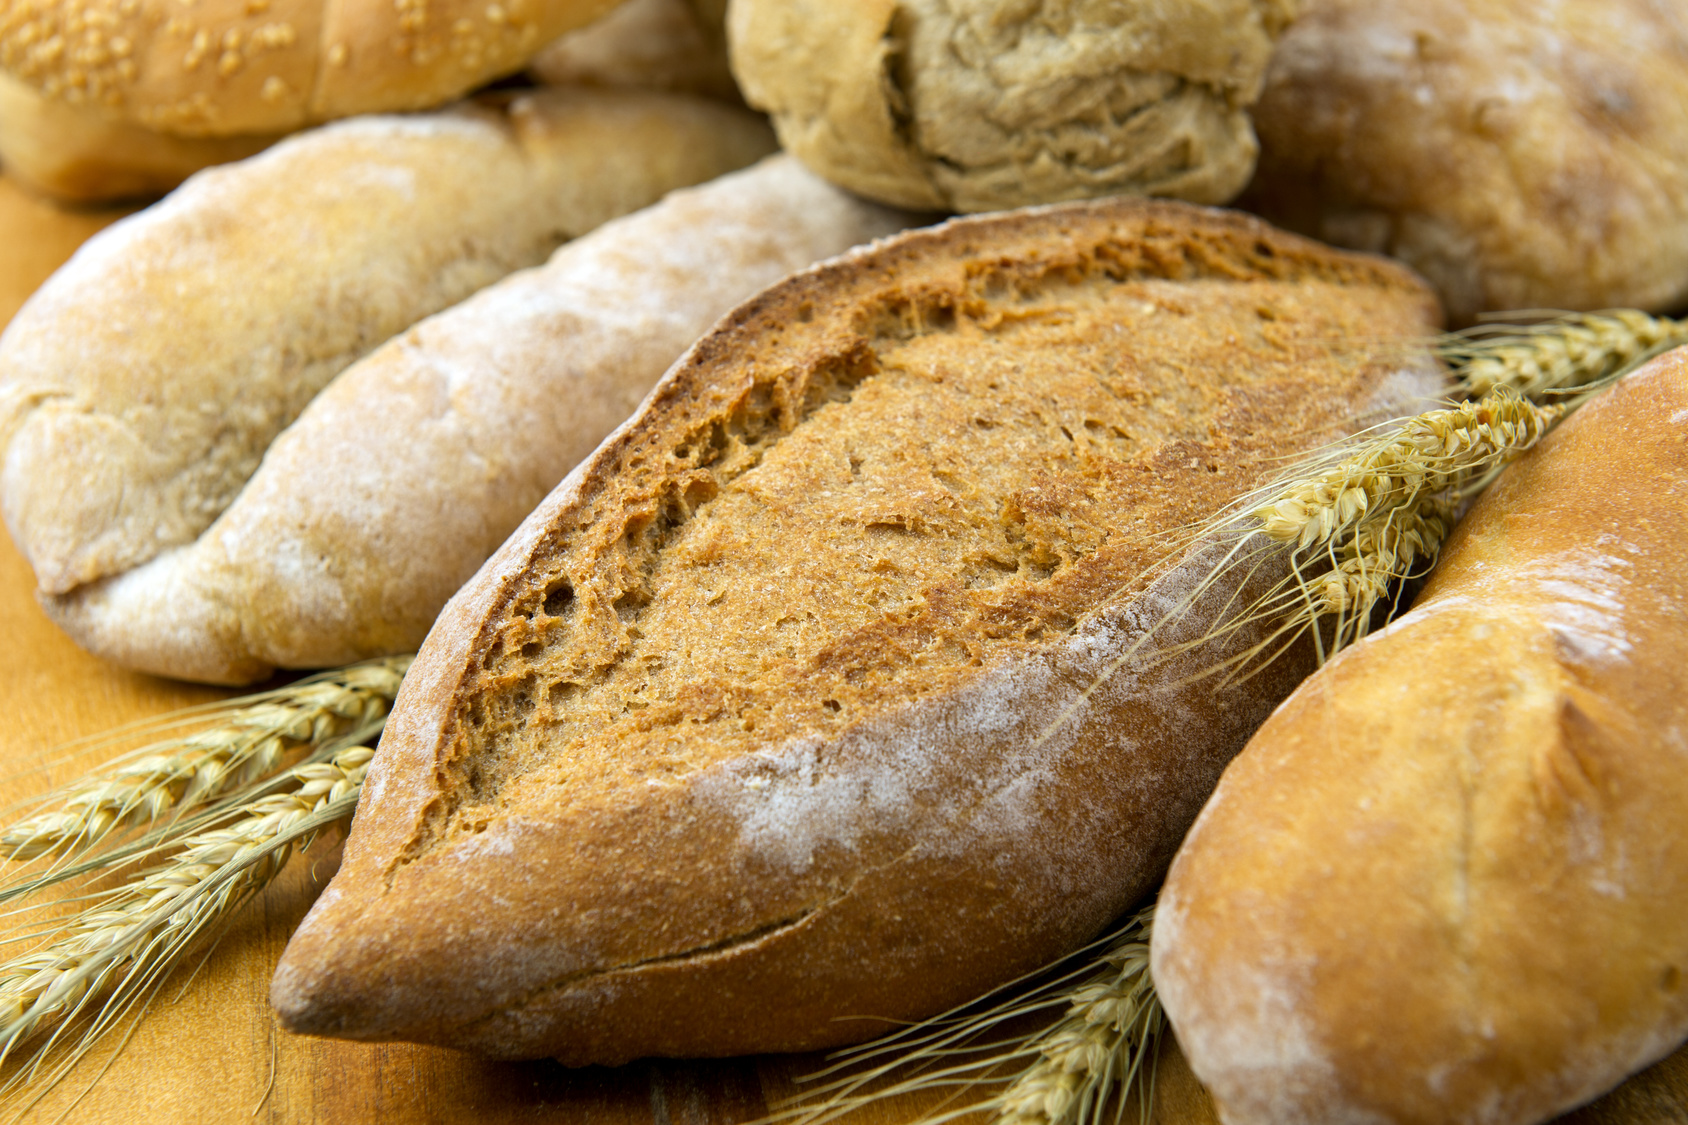 National Prescribing Guidelines For Gluten Free Foods